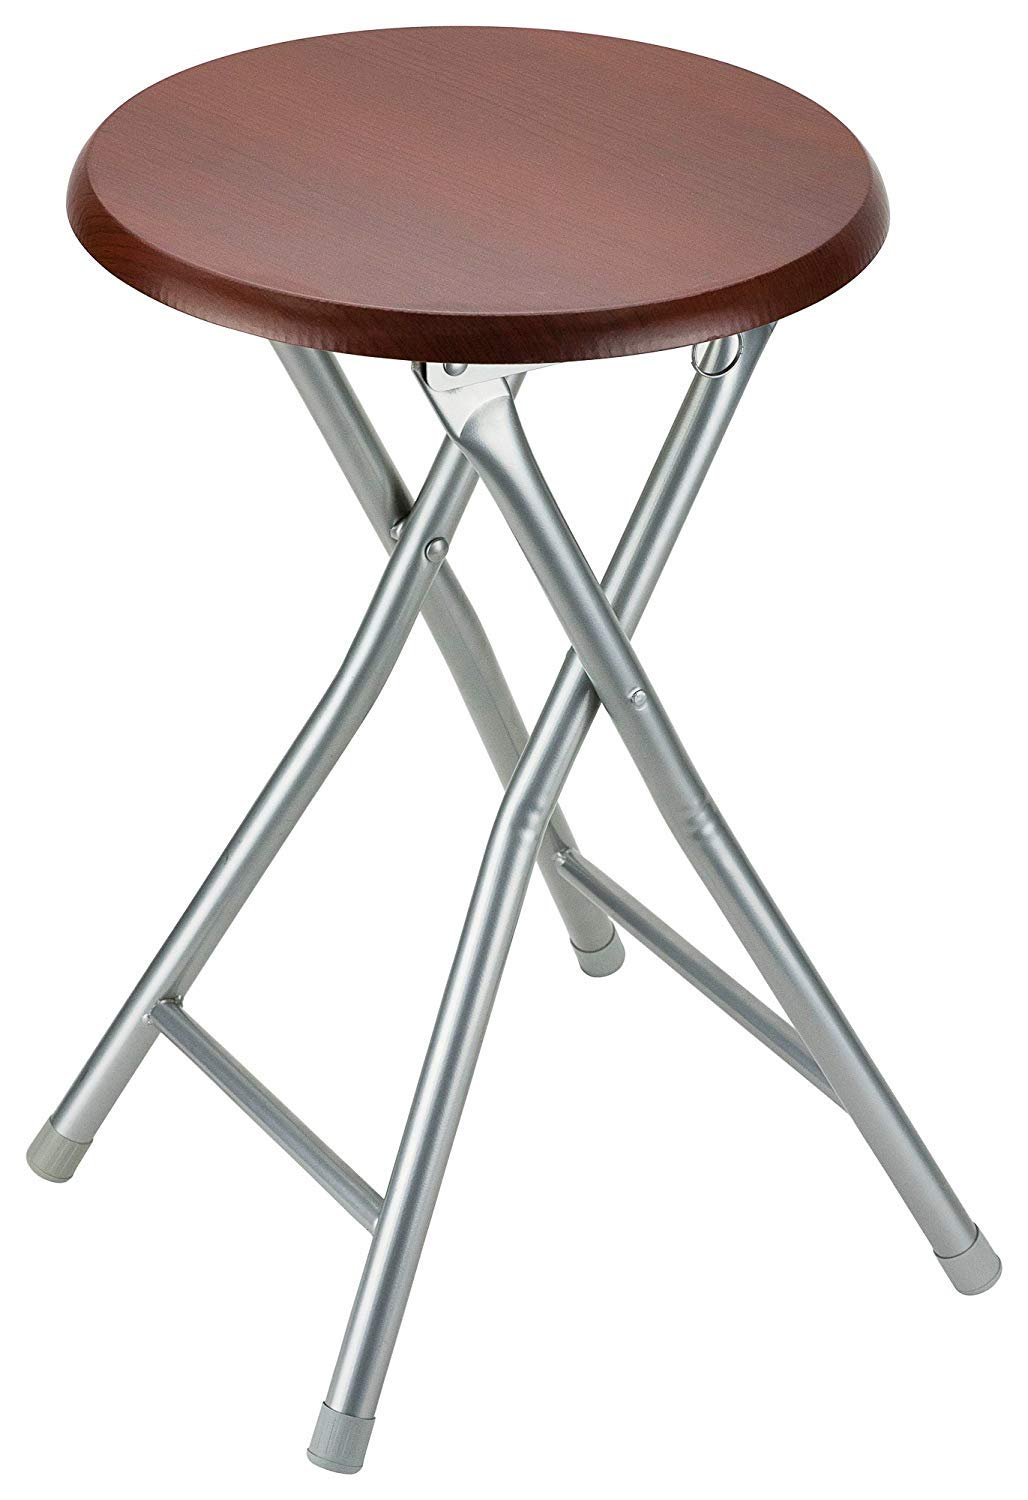 DecorRack Wooden Seat Folding Stool, 18 inch Portable Lightweight Foldable Chair, Collapsible Sitting Stool with Wooden Seating Top, Cherry (2 Pack)